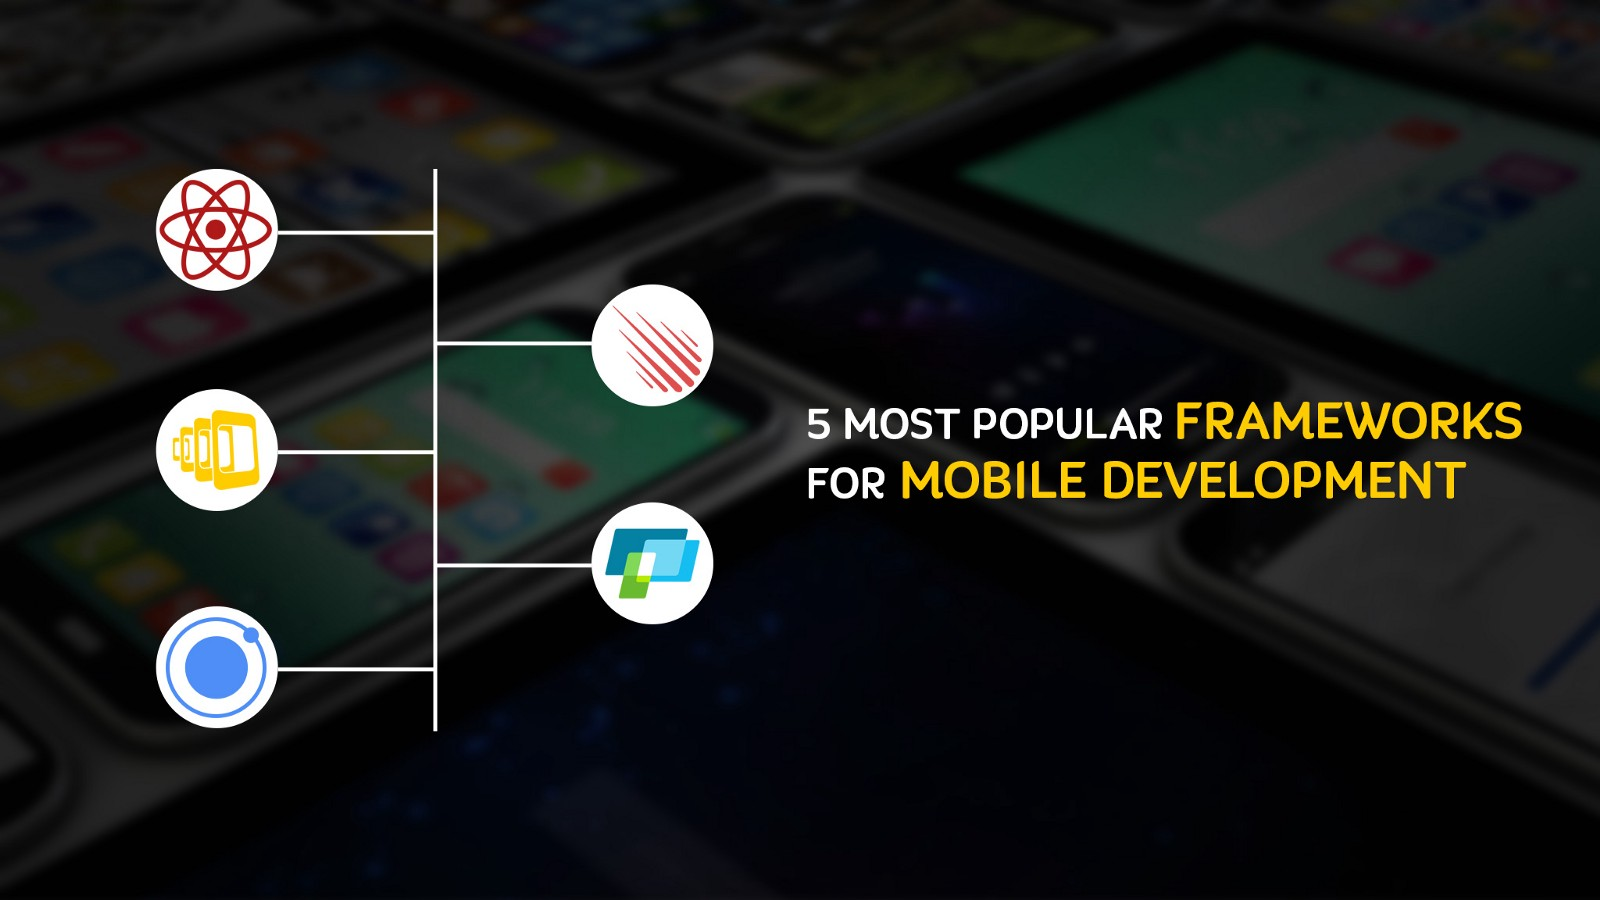 5 Most Popular Frameworks for Mobile Development